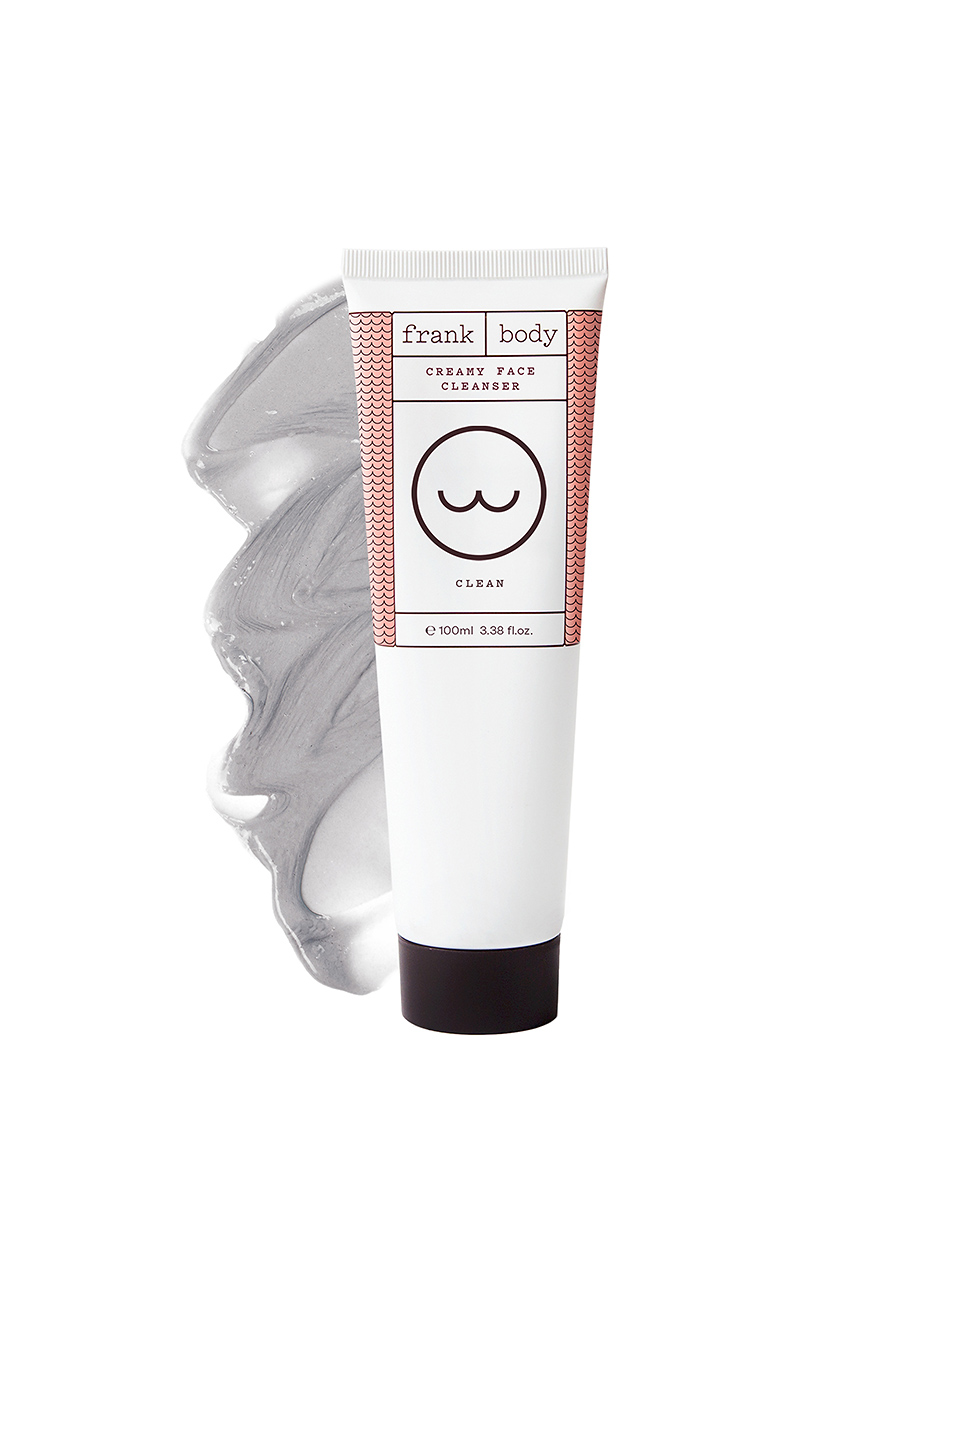 Frank Body Creamy Face Cleanser In N,a